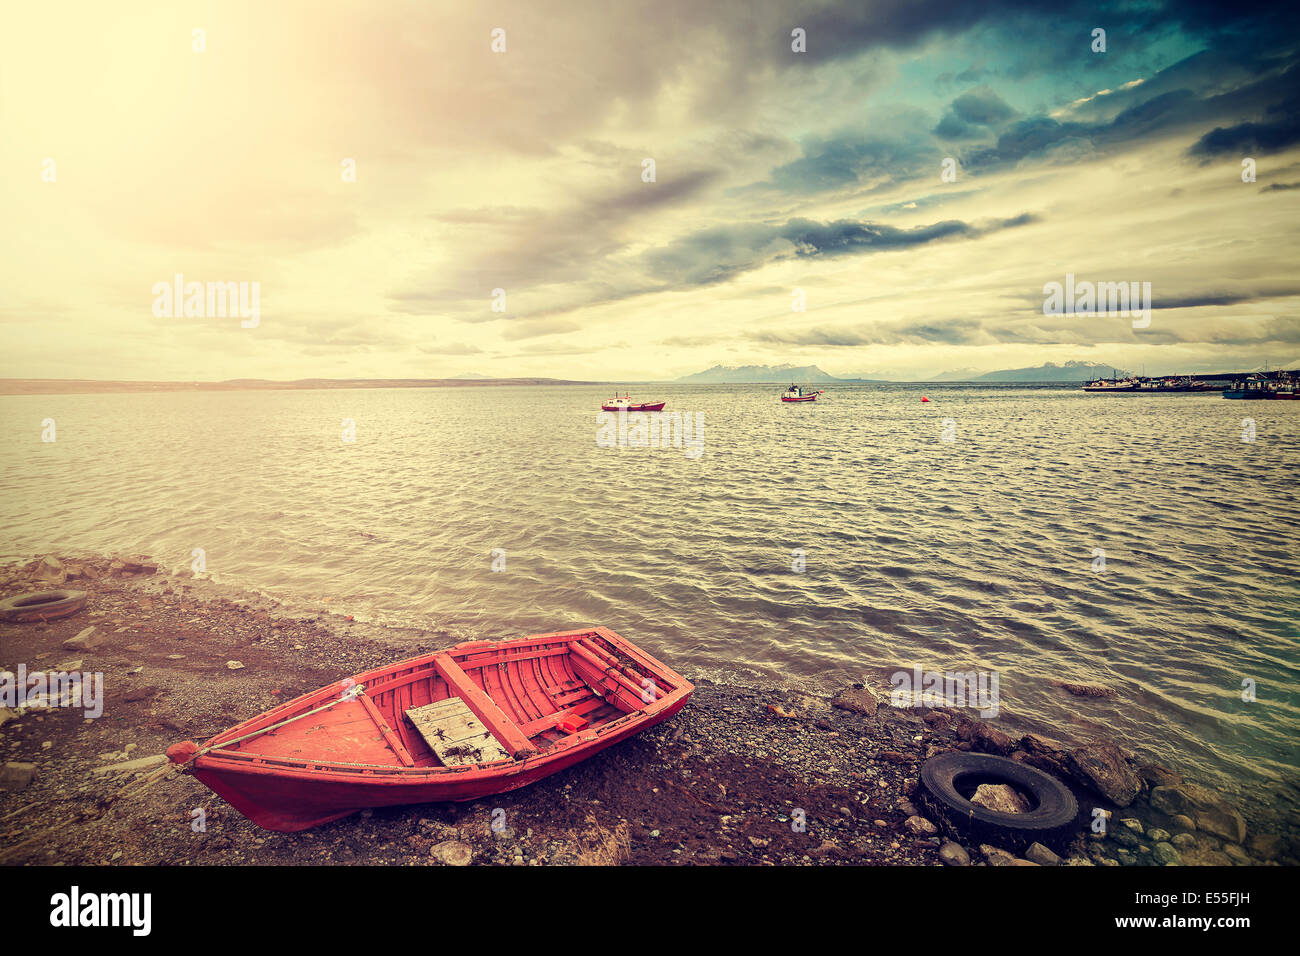 Vintage photo of a little fishing wooden boat - Stock Image